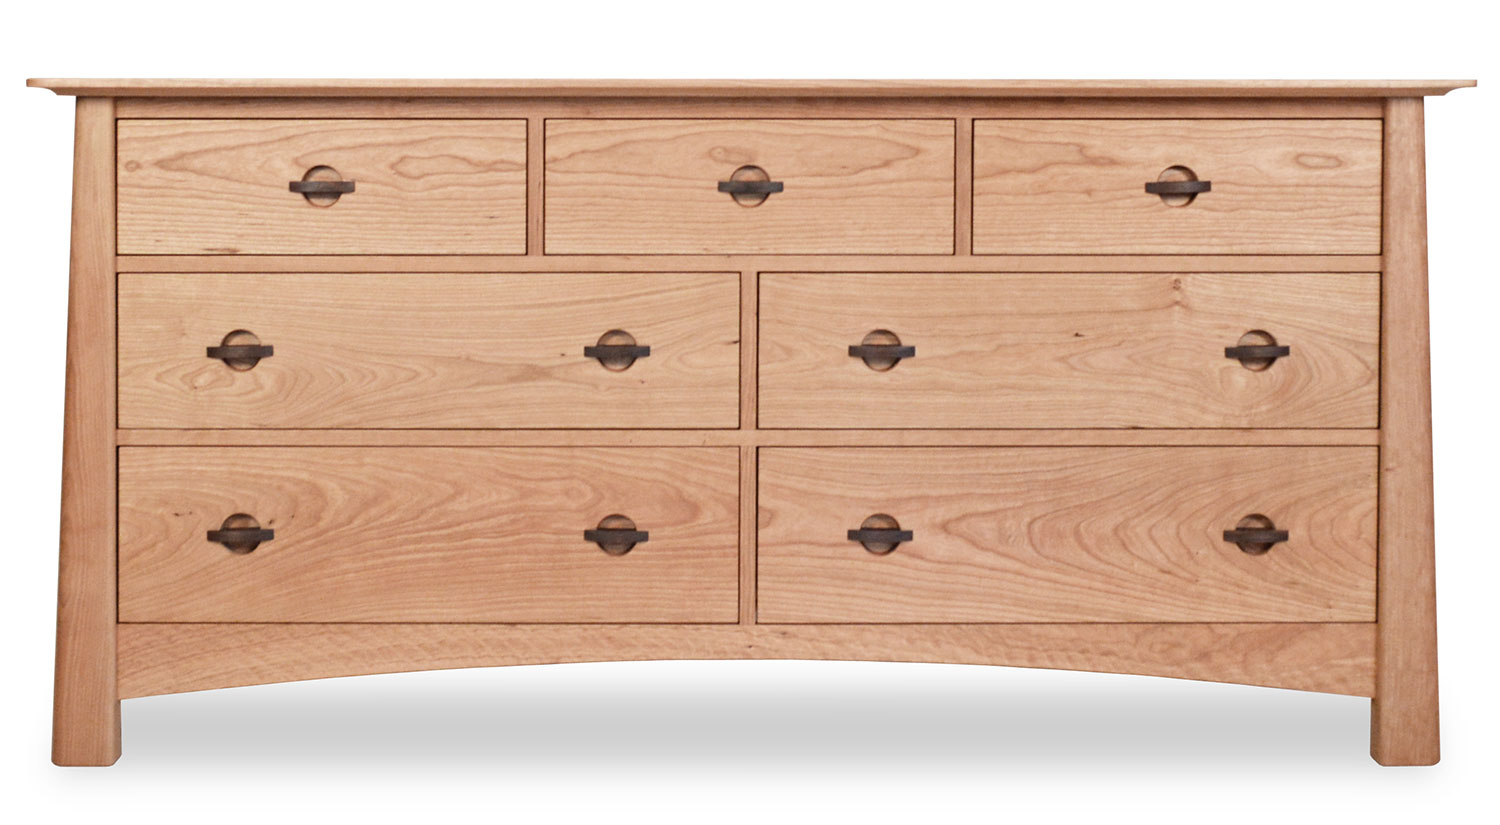 Furniture Stores In Mass Circle Furniture Harvestmoon 7 Drawer Dresser Handcrafted